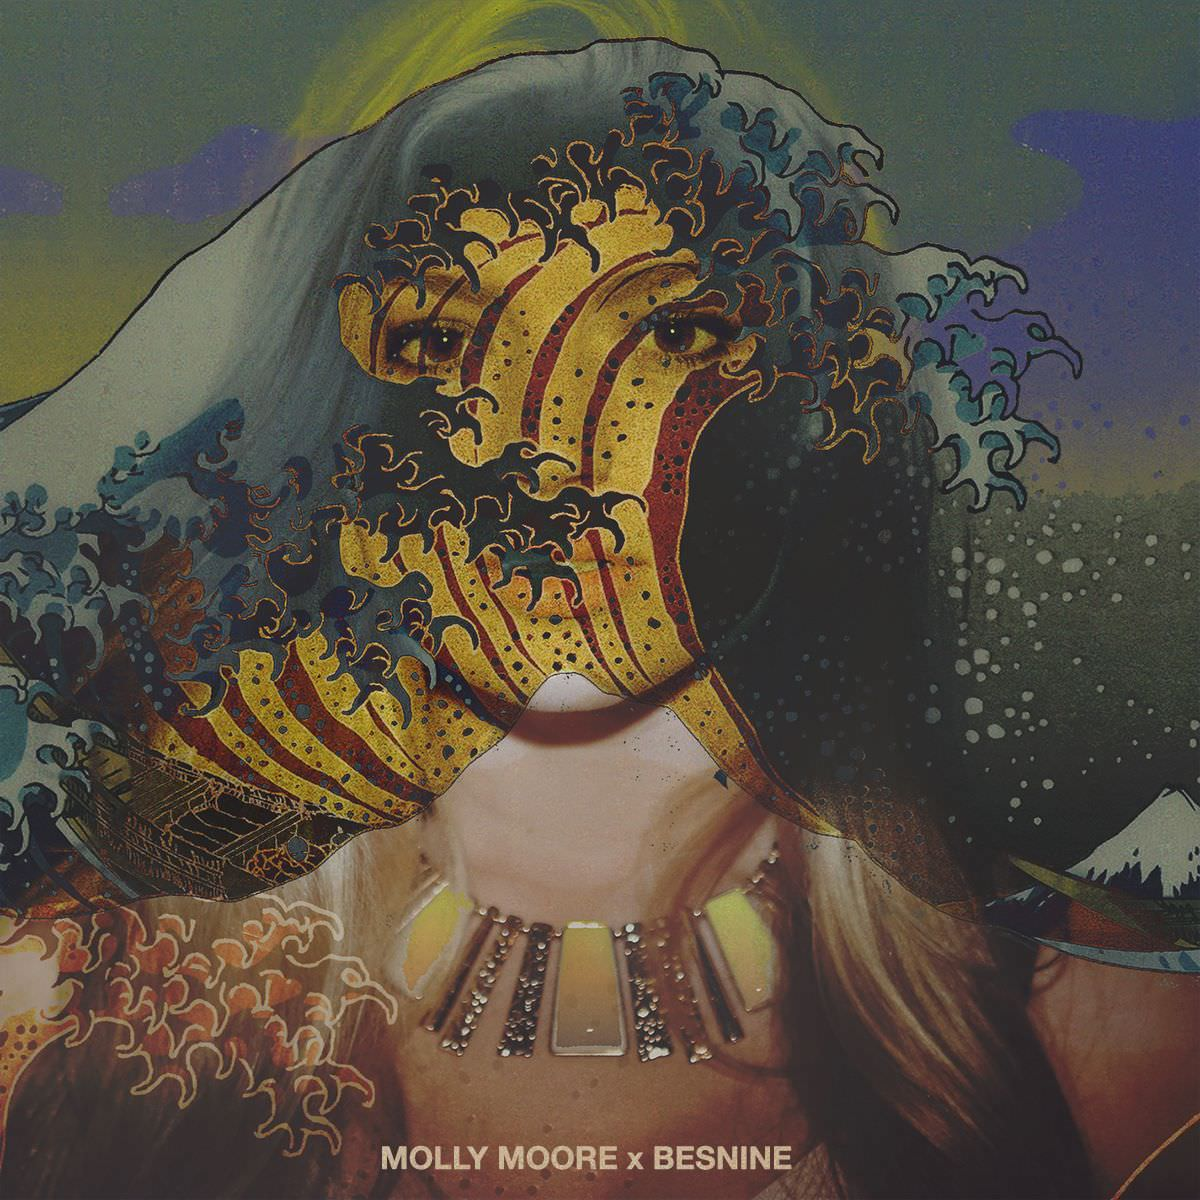 Molly Moore - Natural Disaster (Besnine Remix)